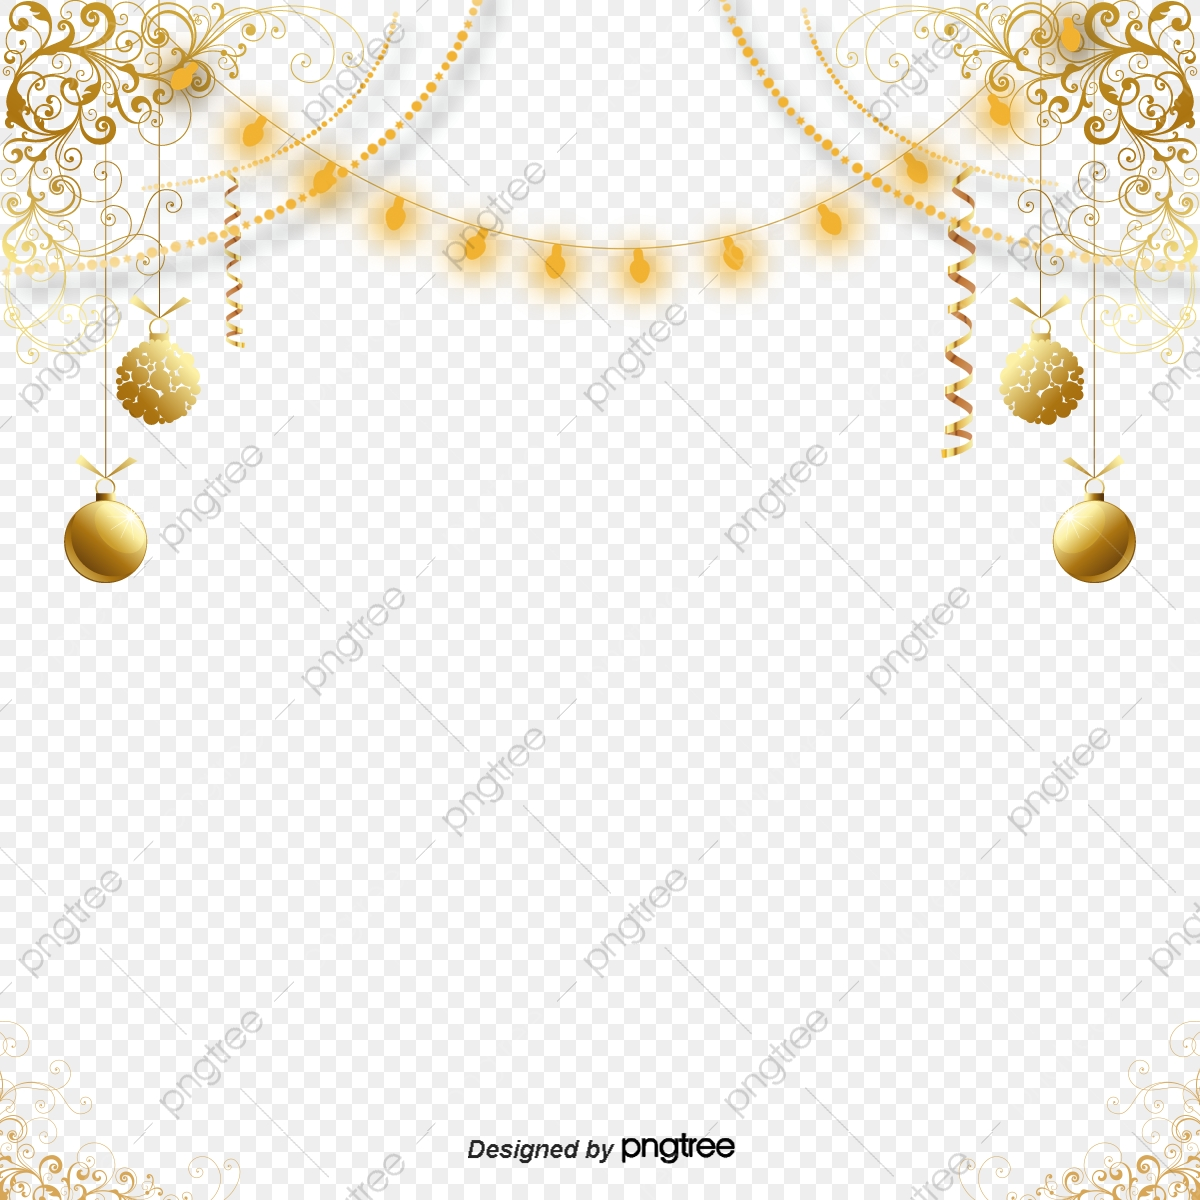 Fashion Atmospheric Golden Decorative Patterns Elements Originality Coloured Ribbon Fashion Png Transparent Clipart Image And Psd File For Free Download